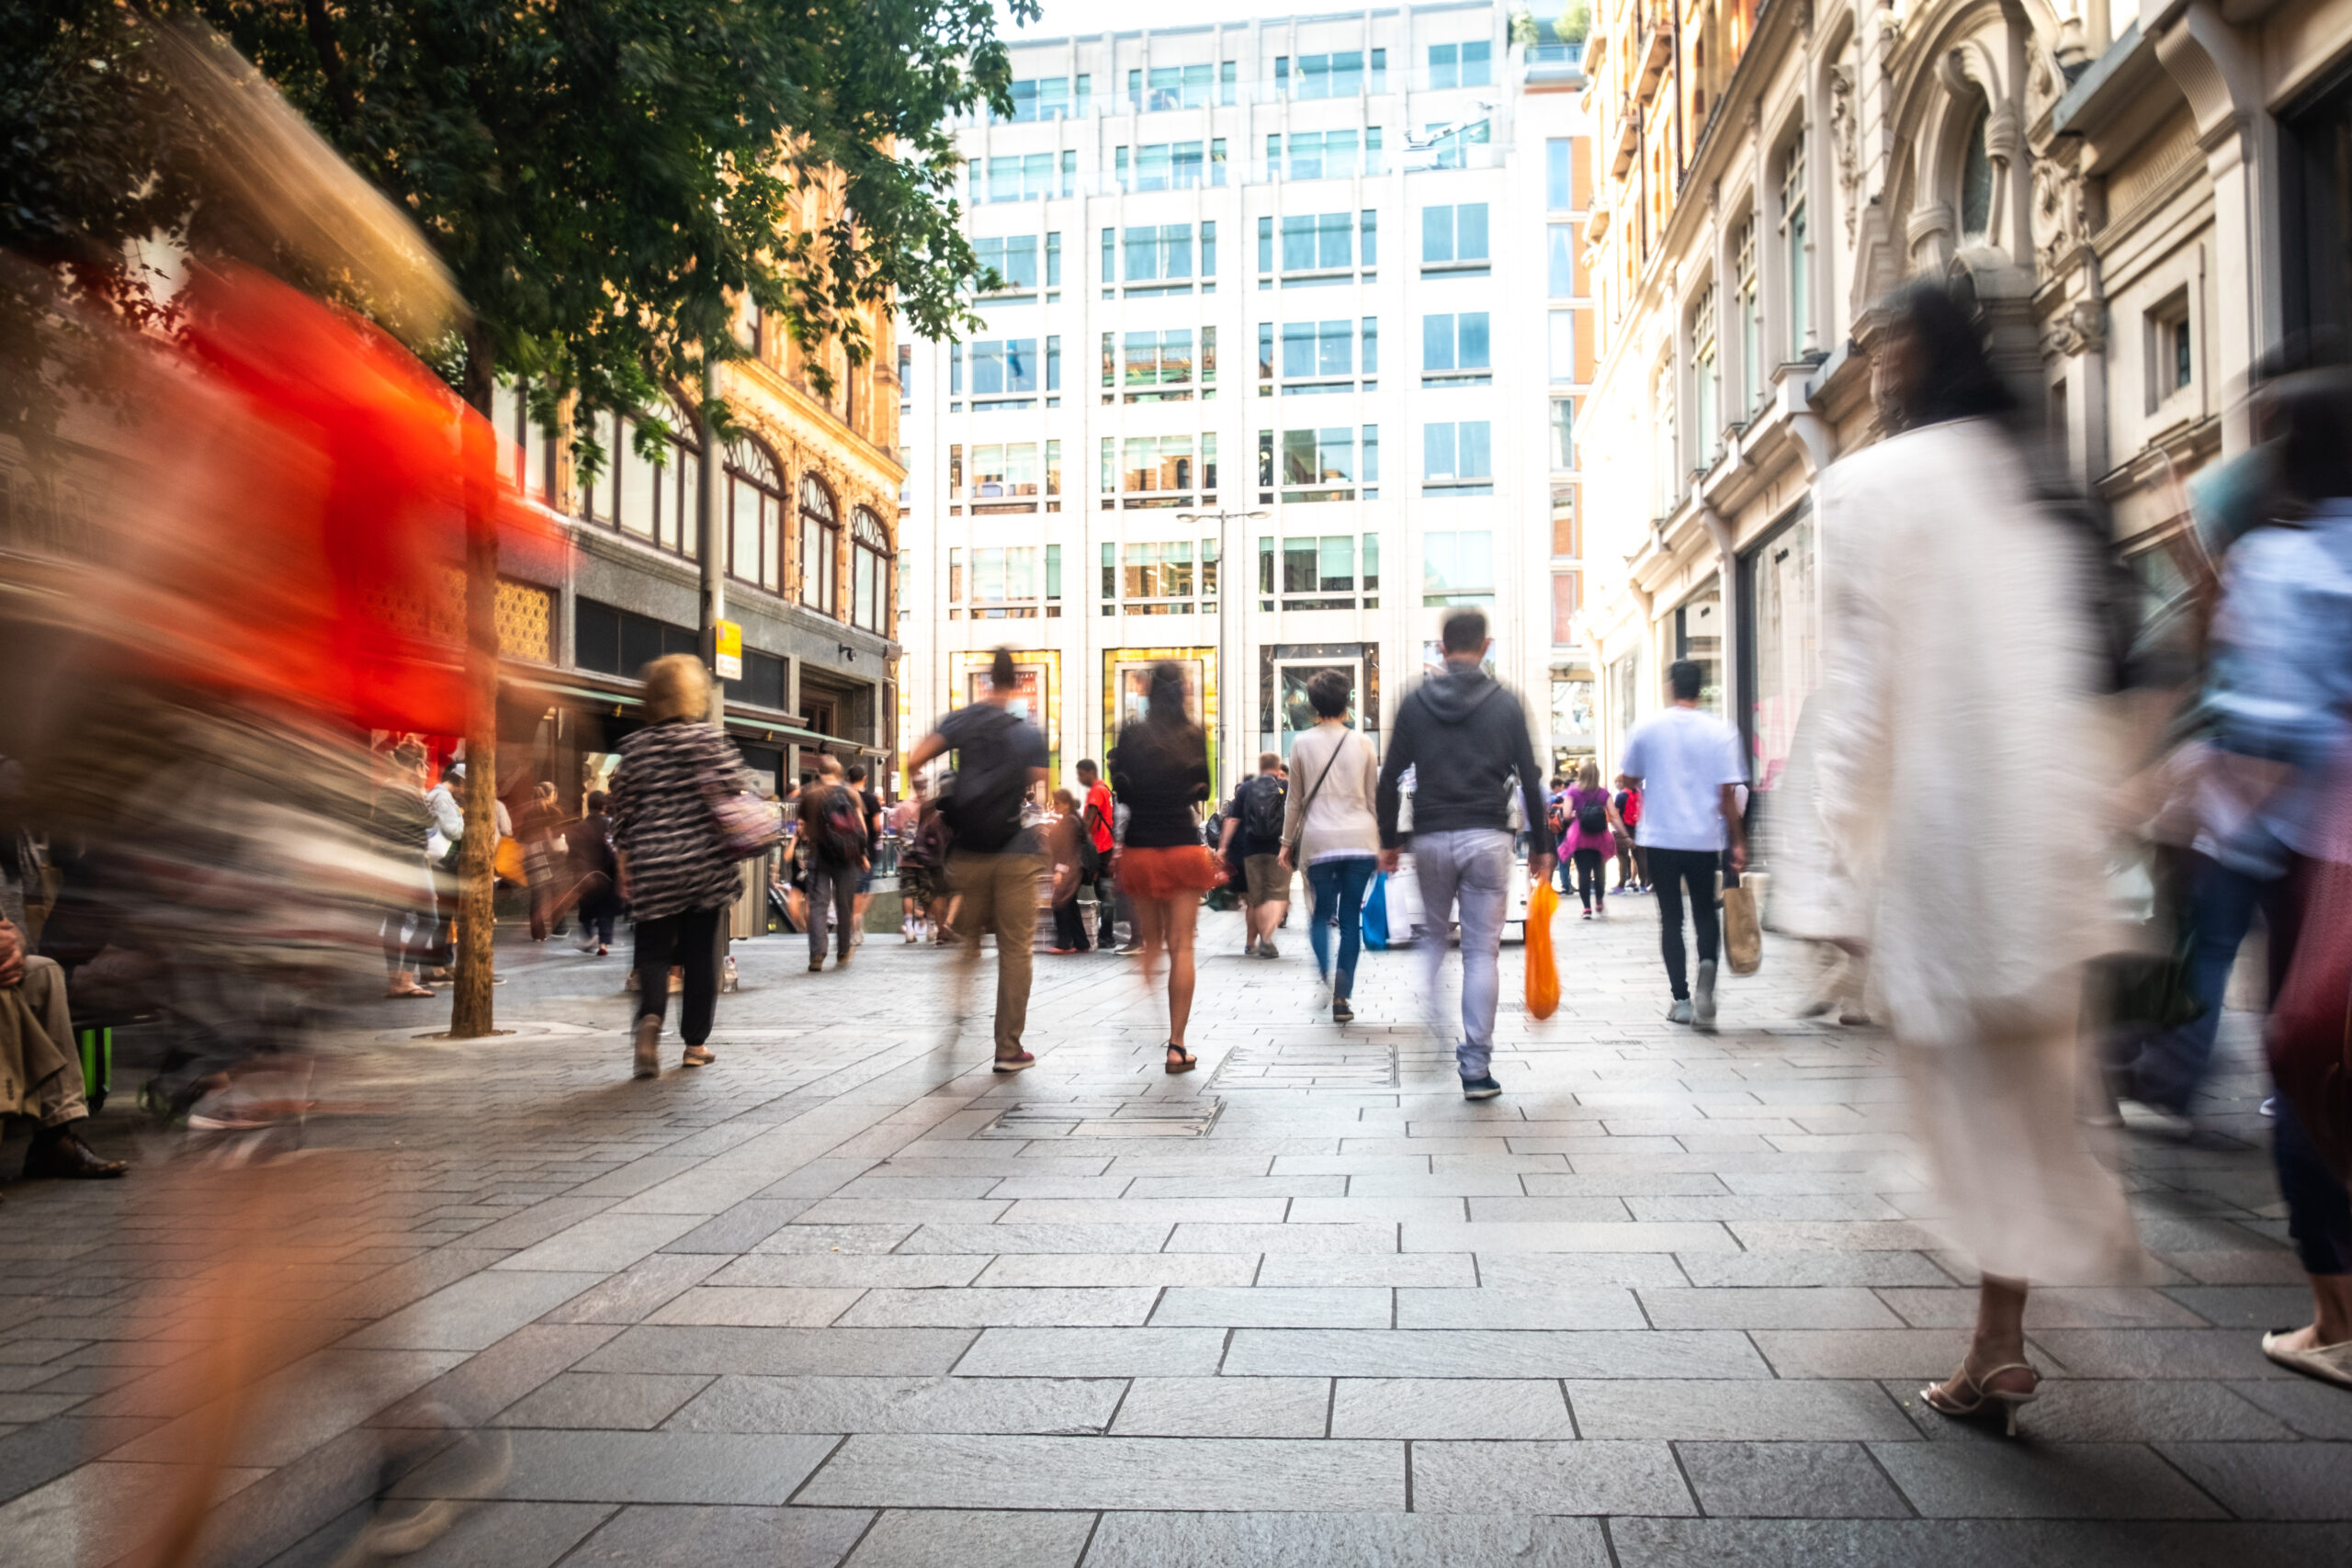 Motion Blurred London Shopping Street